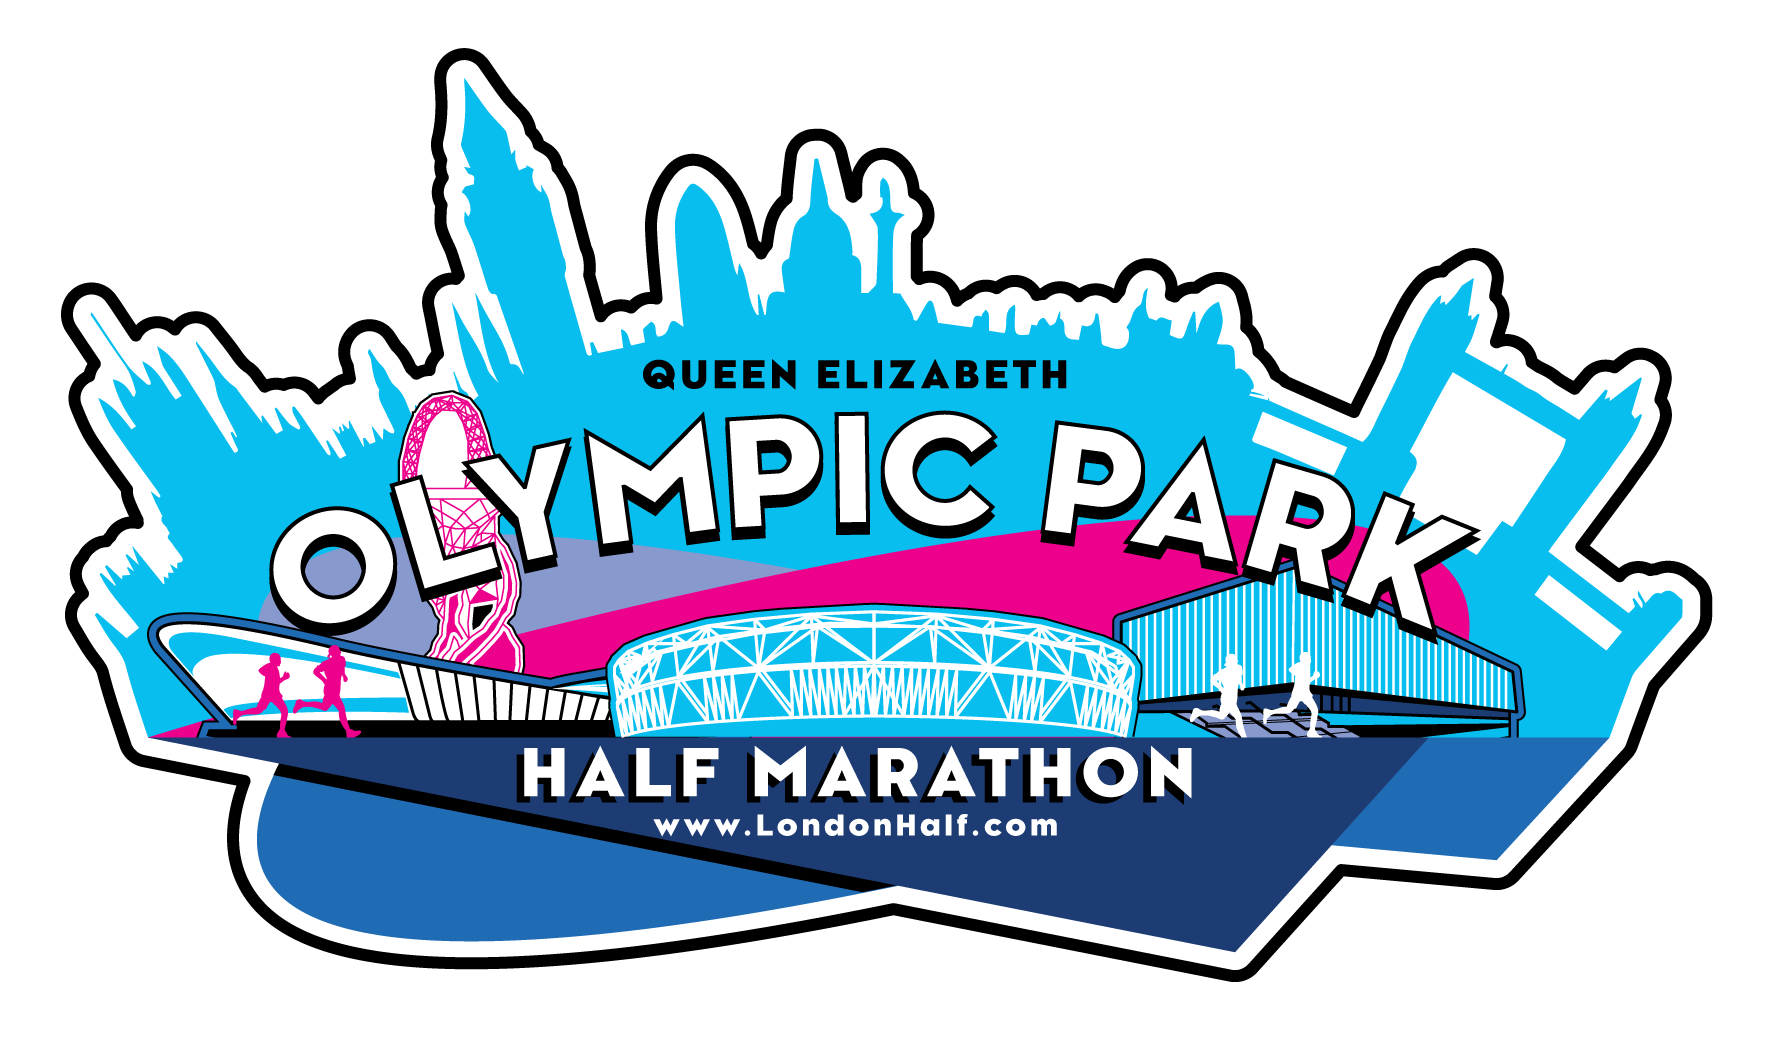 Olympic stadium clipart clipart freeuse Queen Elizabeth Olympic Park Half Marathon 2019 clipart freeuse